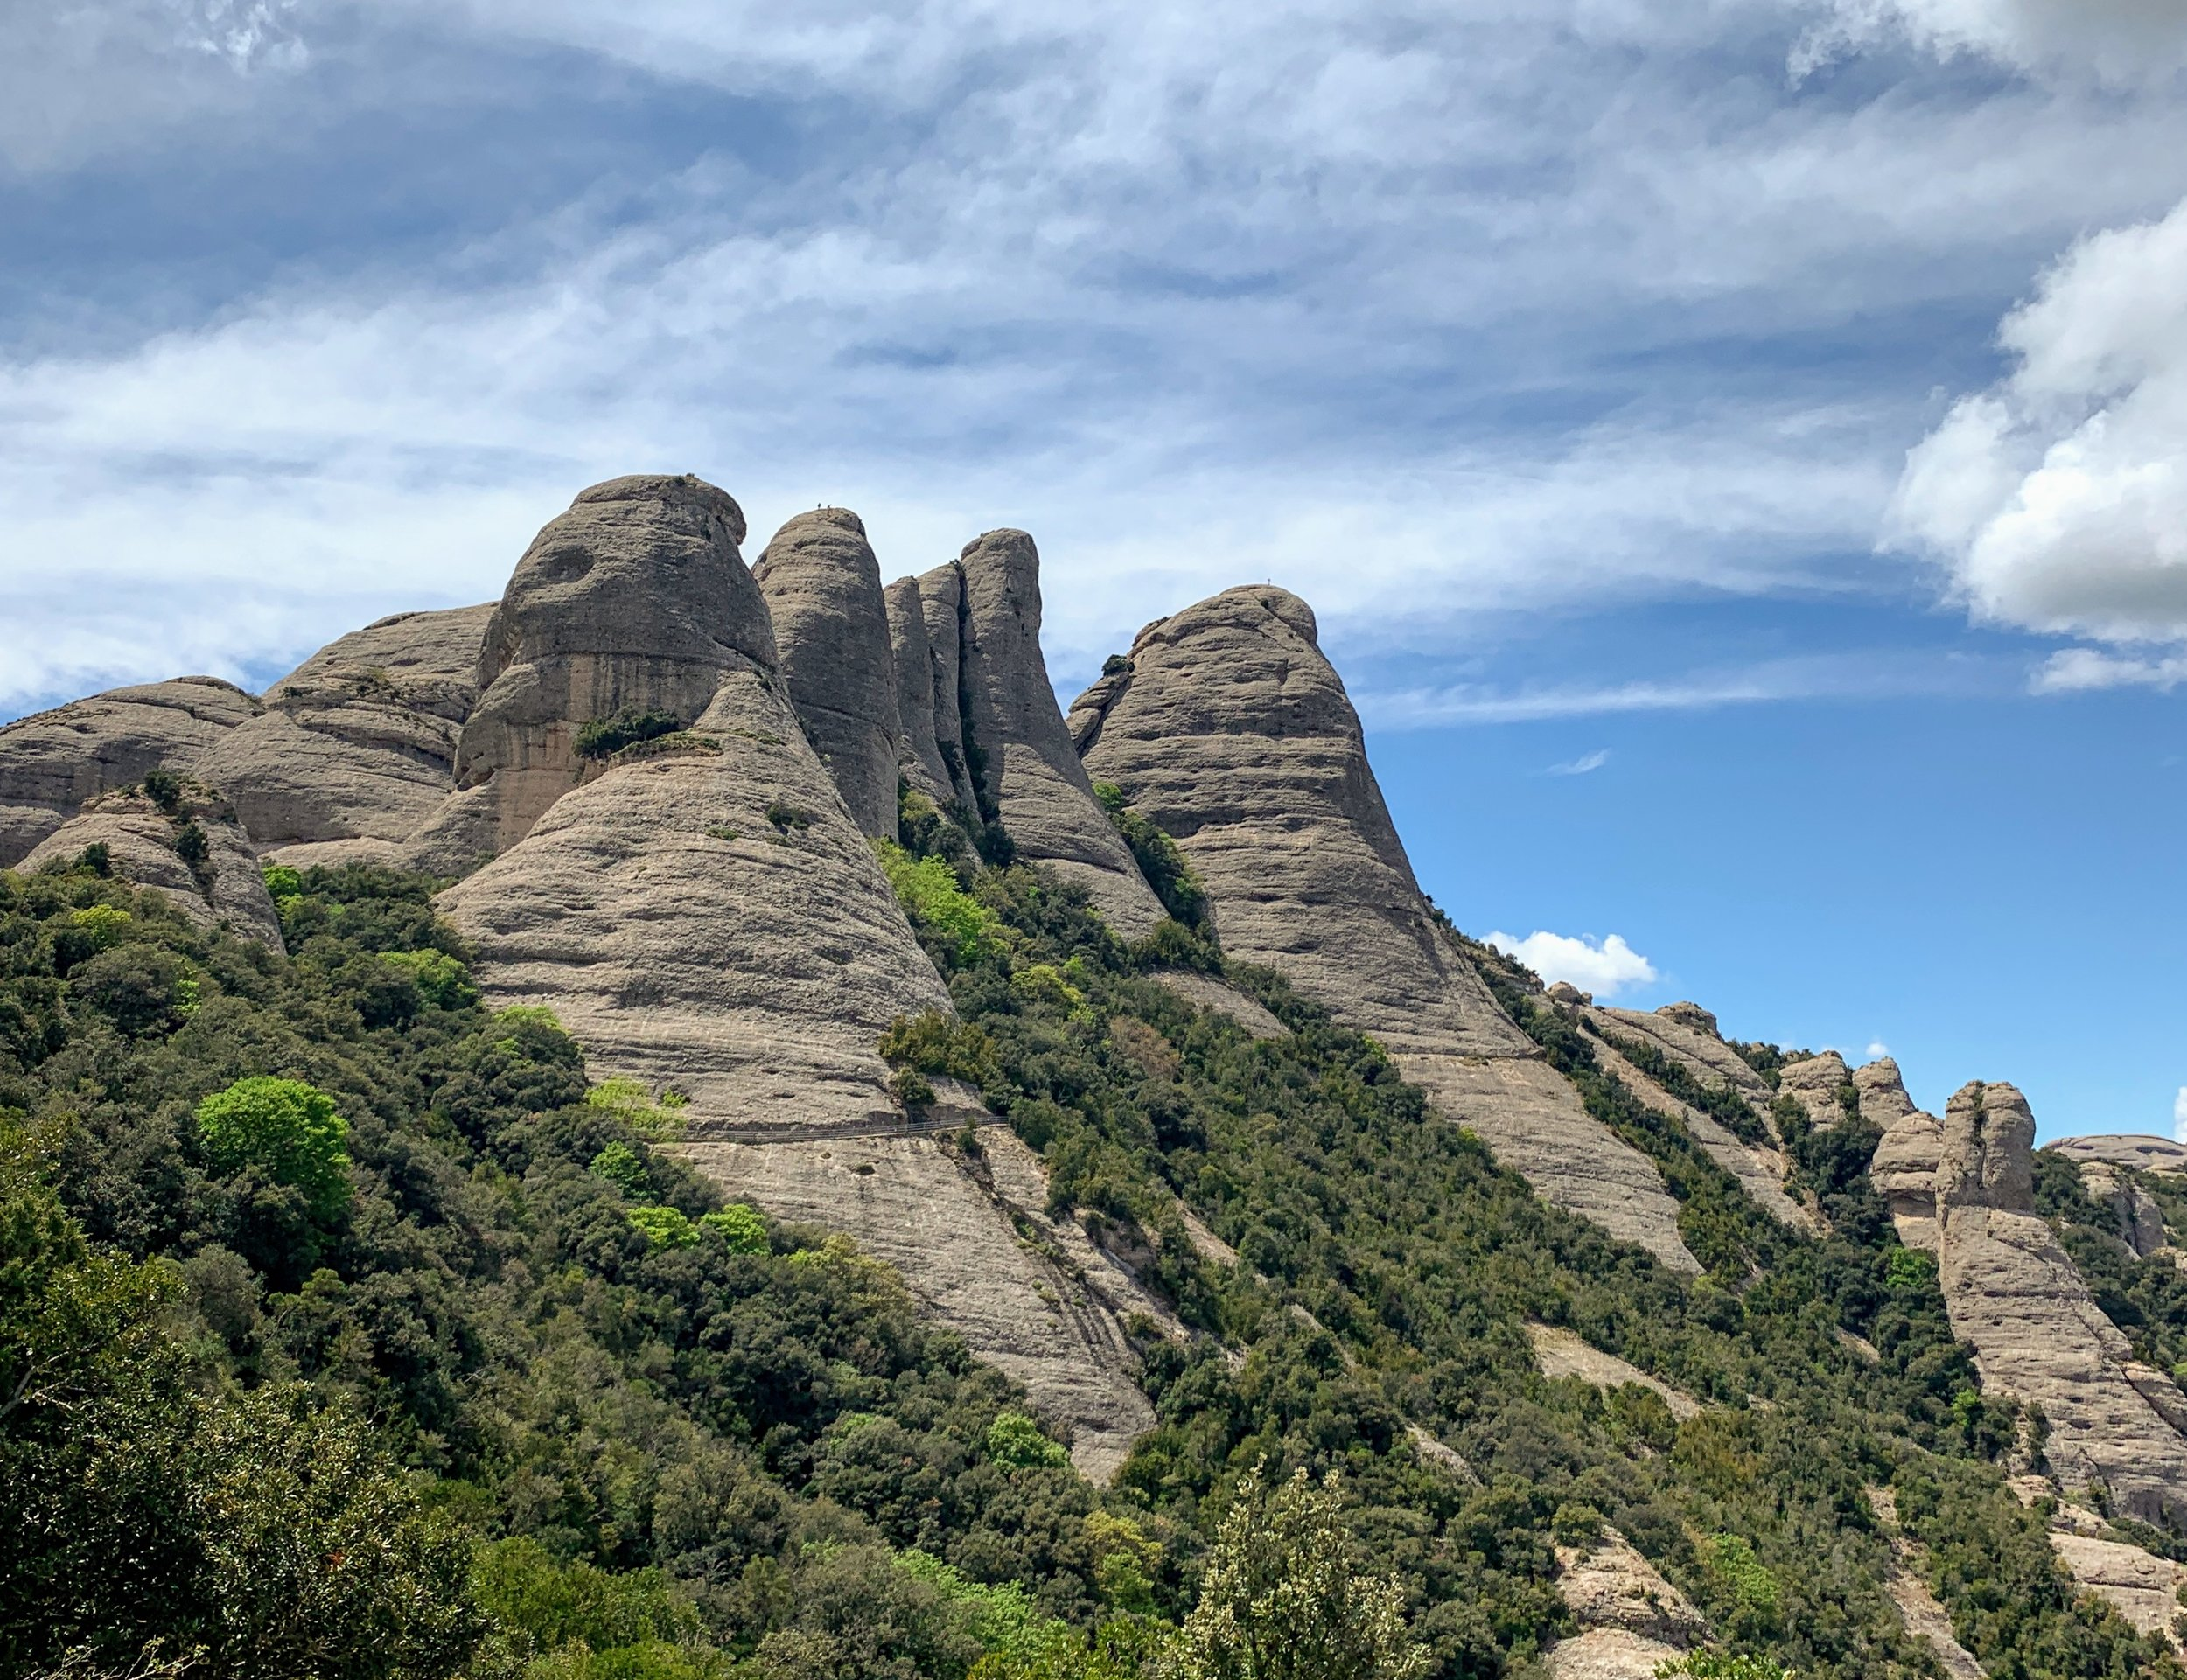 Beautiful rock formations at Montserrat